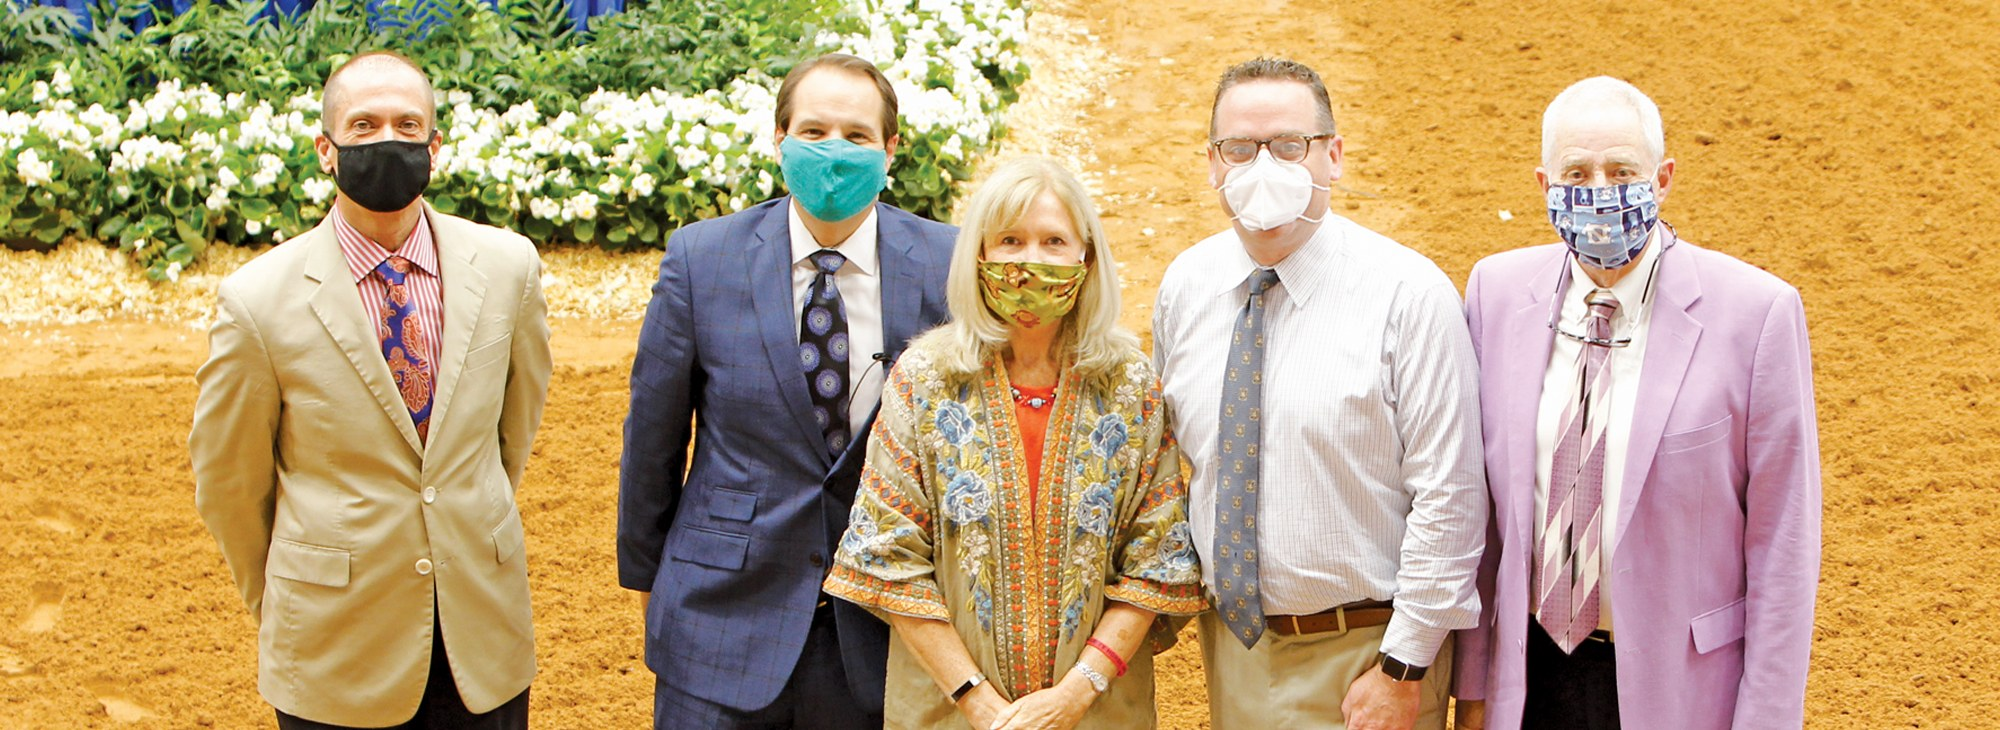 Showofficials with their masks on